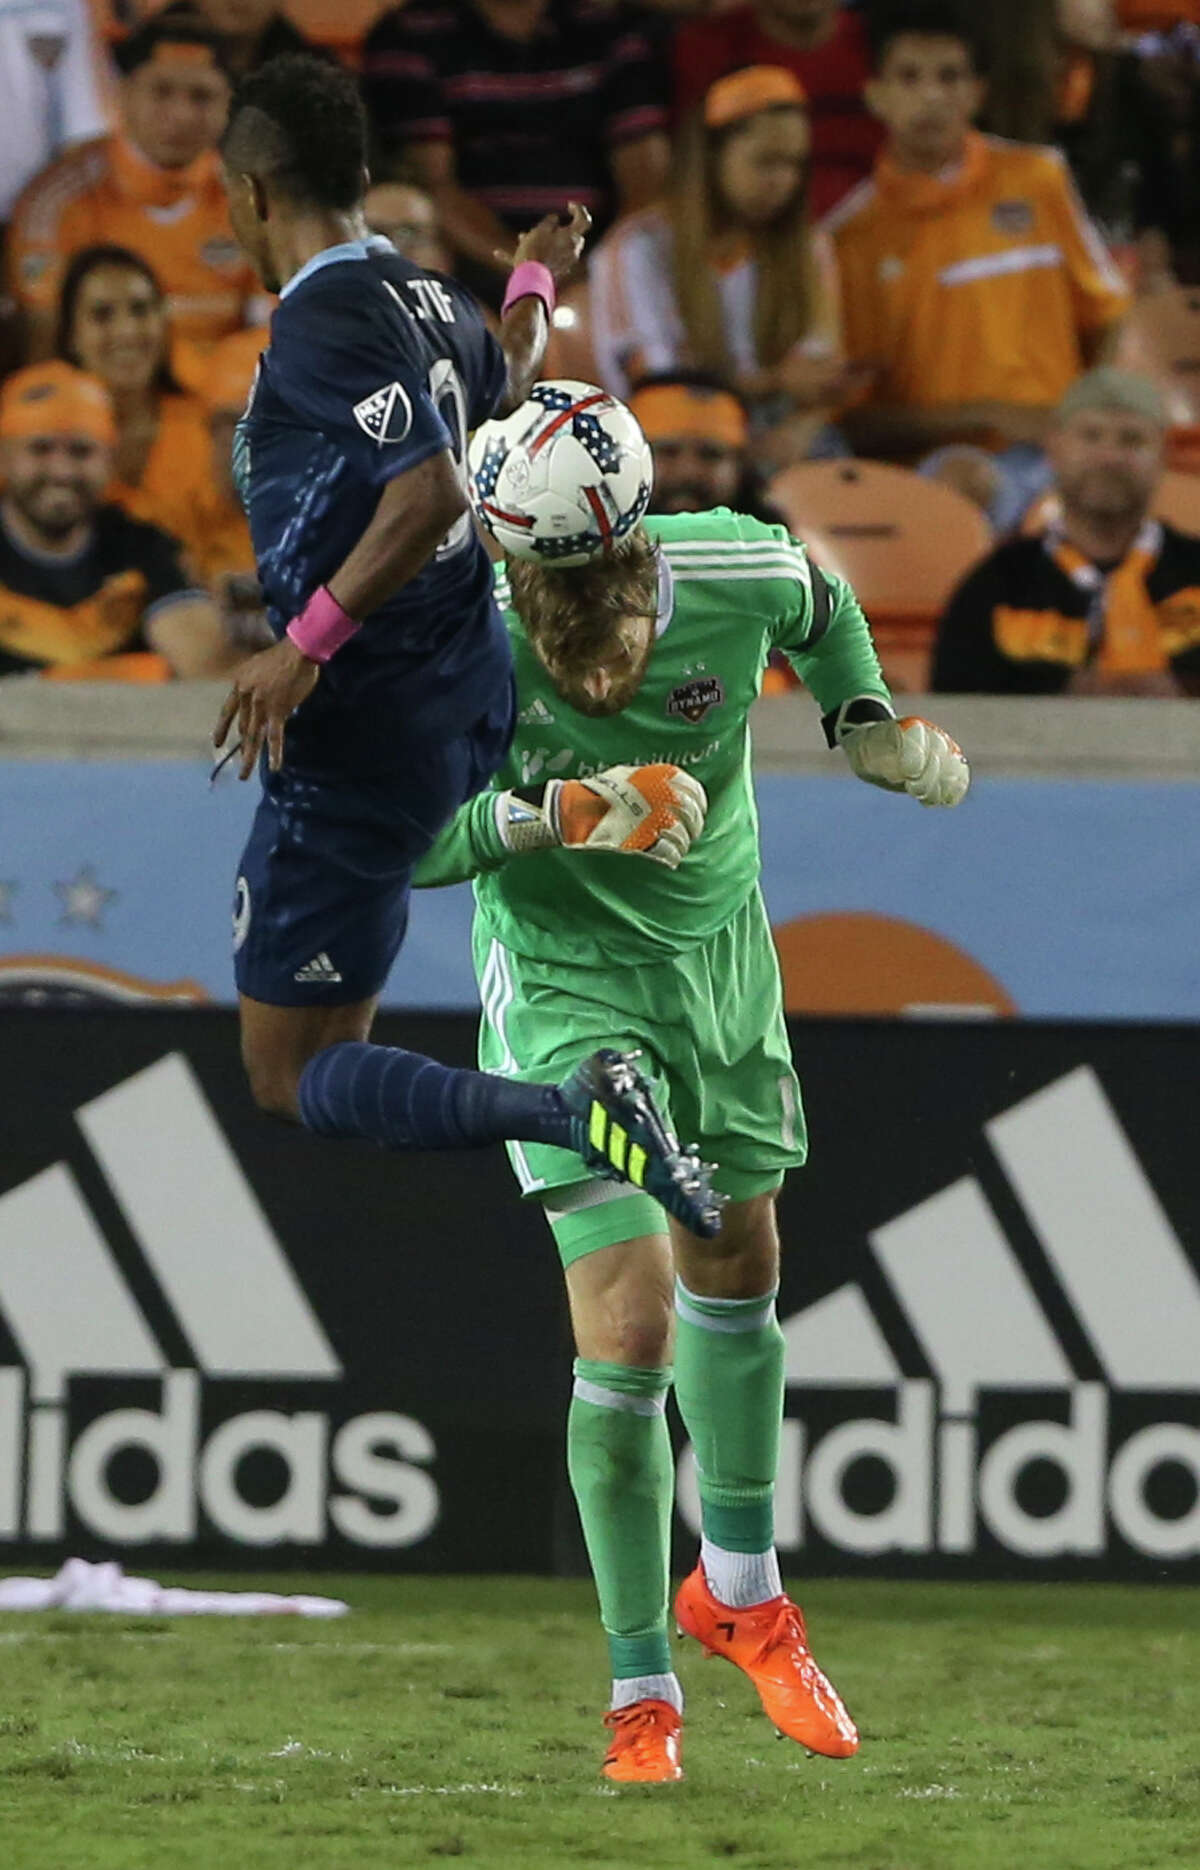 Houston Dynamo goalkeeper Tyler Deric (1) attempts a header to get the ball away from Sporting Kansas City forward Latif Blessing (9) during the second half of the MLS game at BBVA Compass Stadium Wednesday, Oct. 11, 2017, in Houston. Houston Dynamo defeated Sporting Kansas City 2-1. ( Yi-Chin Lee / Houston Chronicle )